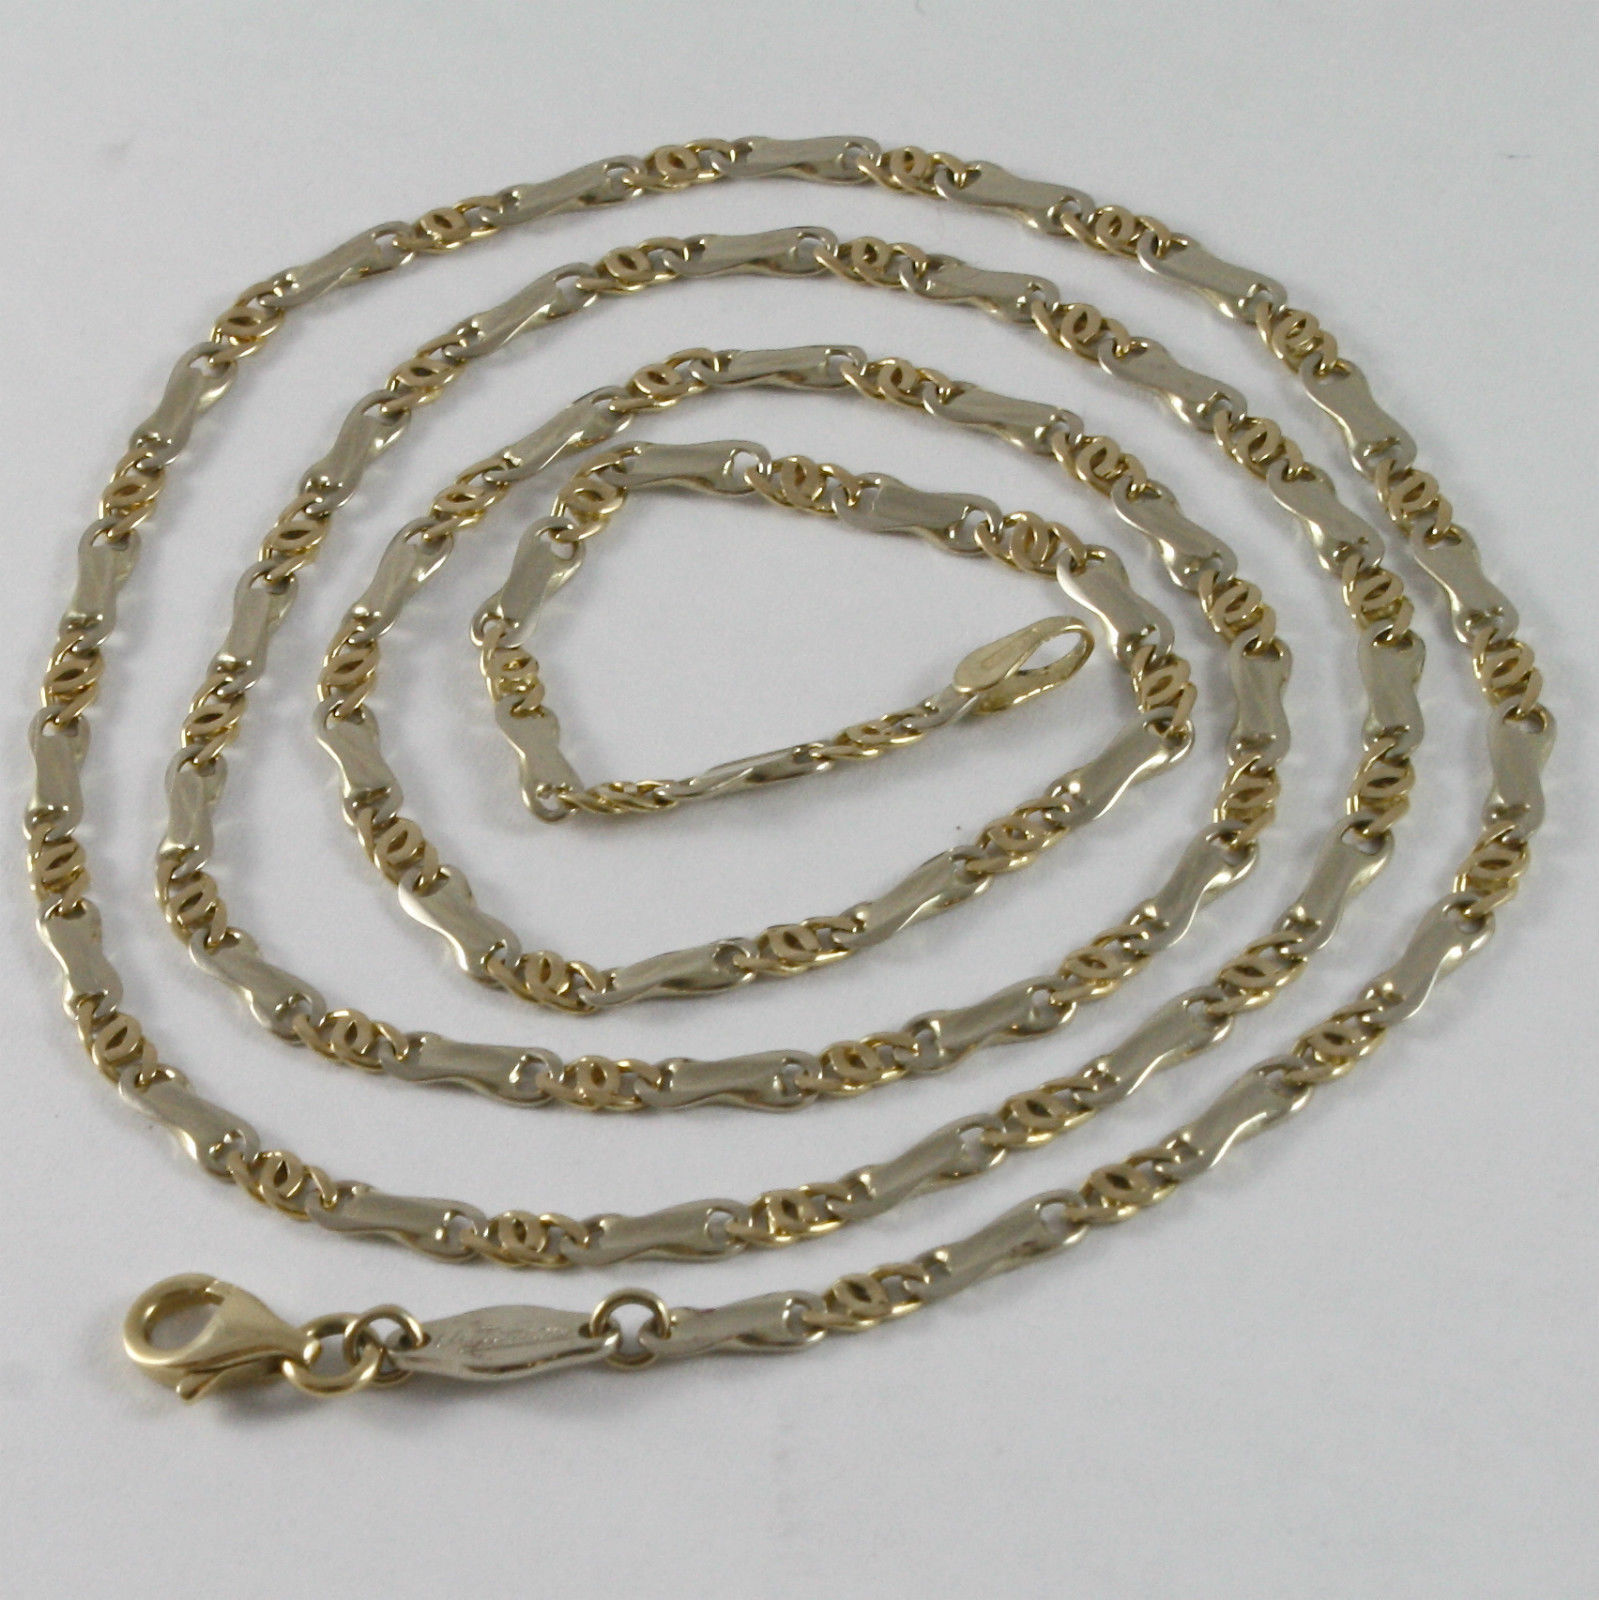 MASSIVE SOLID 18K YELLOW & WHITE GOLD CHAIN WITH ALTERNATE LINK MADE IN ITALY